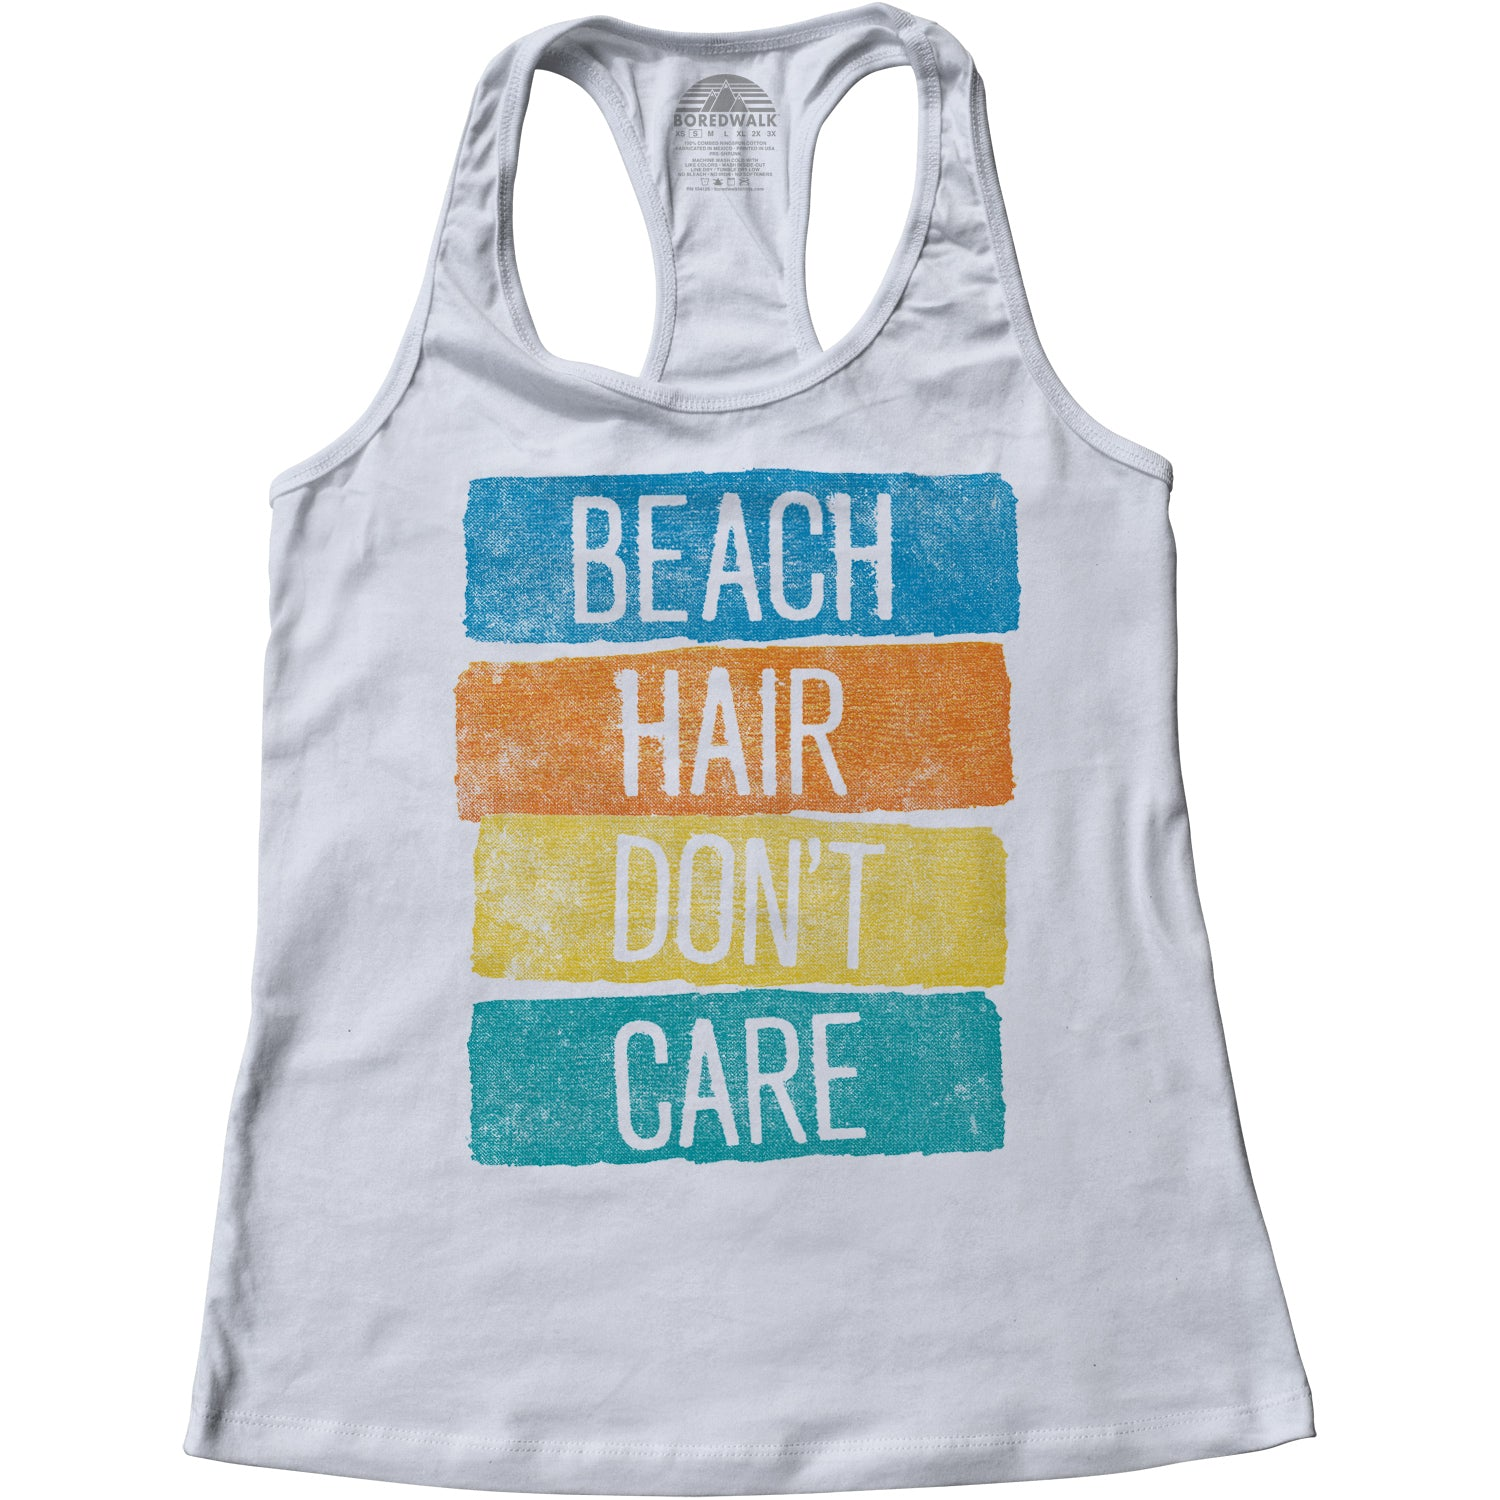 Women's Beach Hair Don't Care Racerback Tank Top